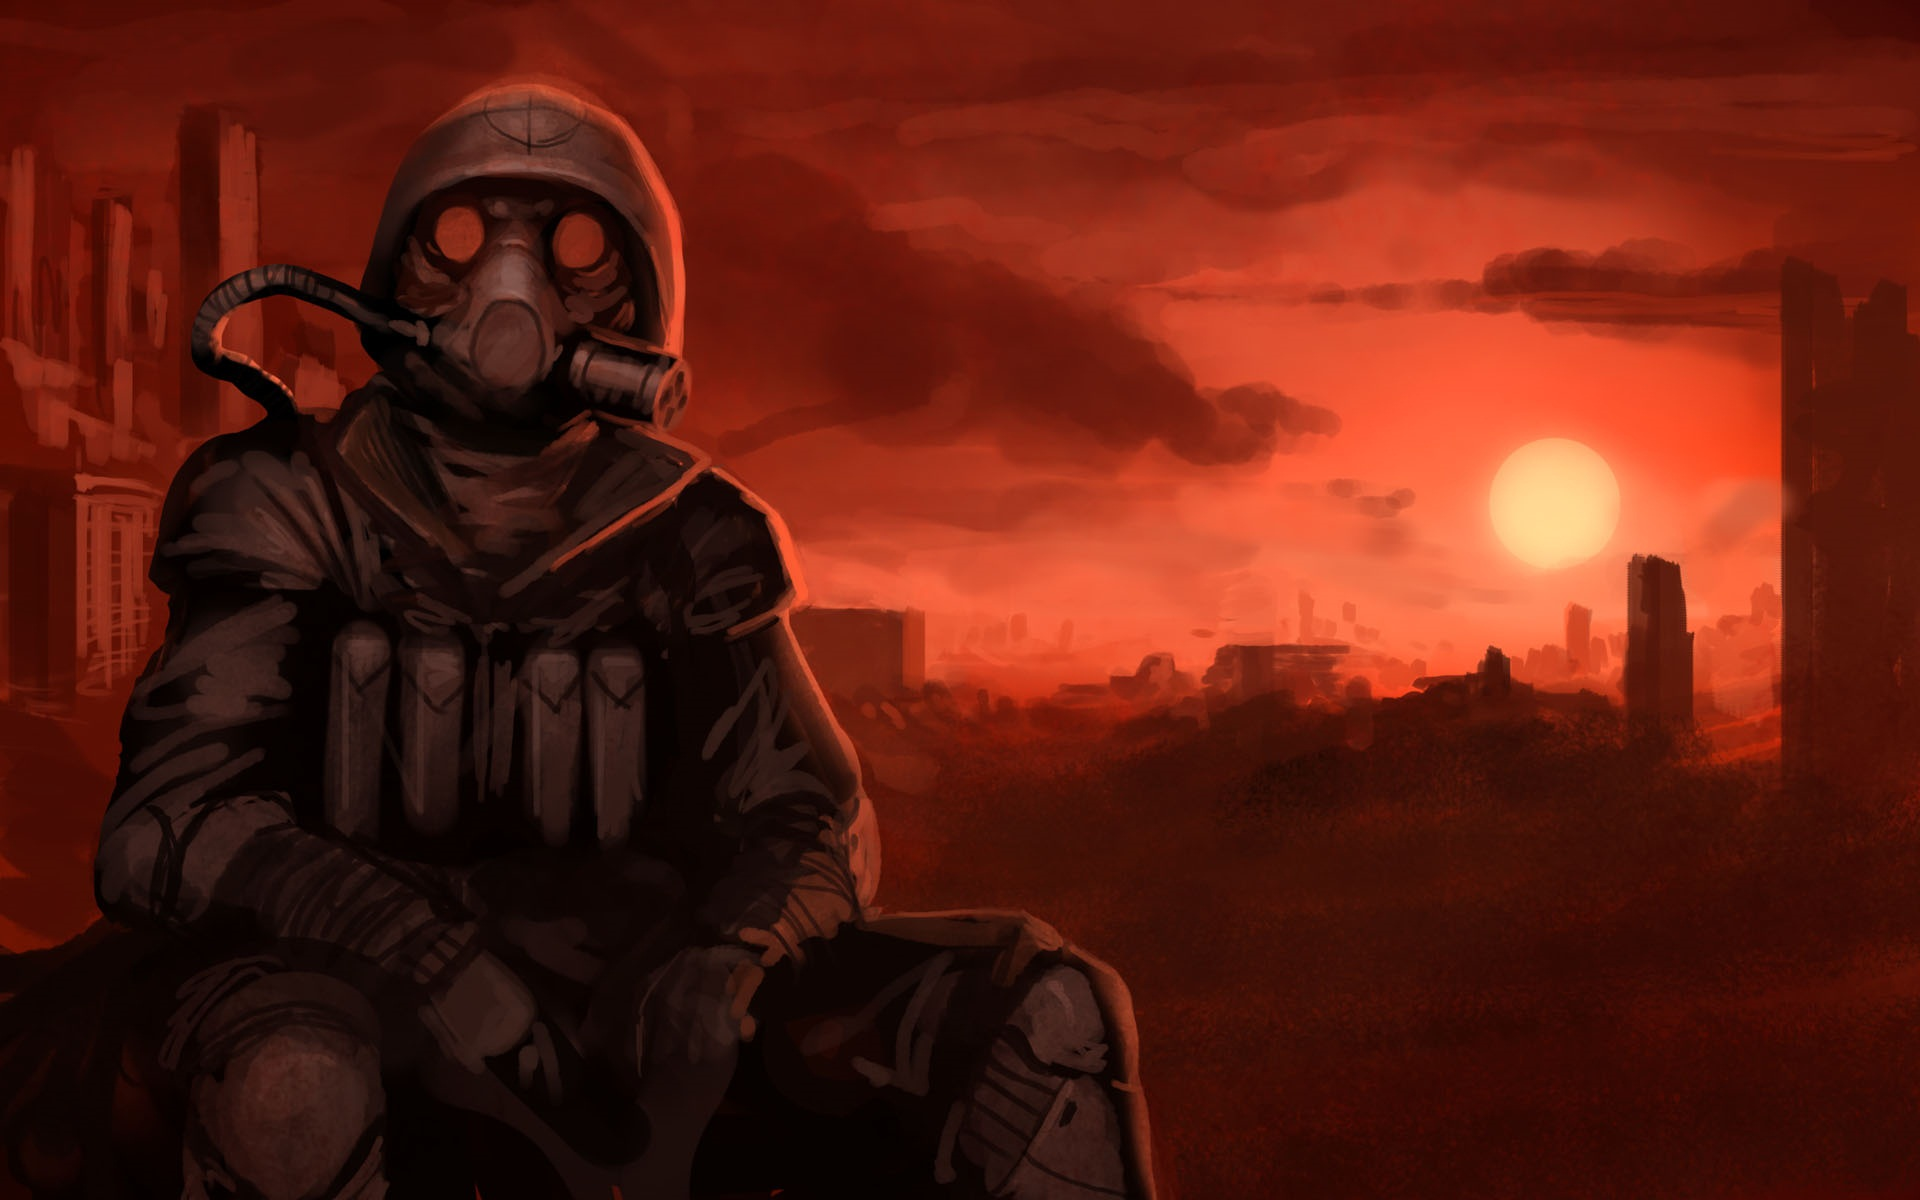 Apocalyptic gas masks gone with the blastwave sitting